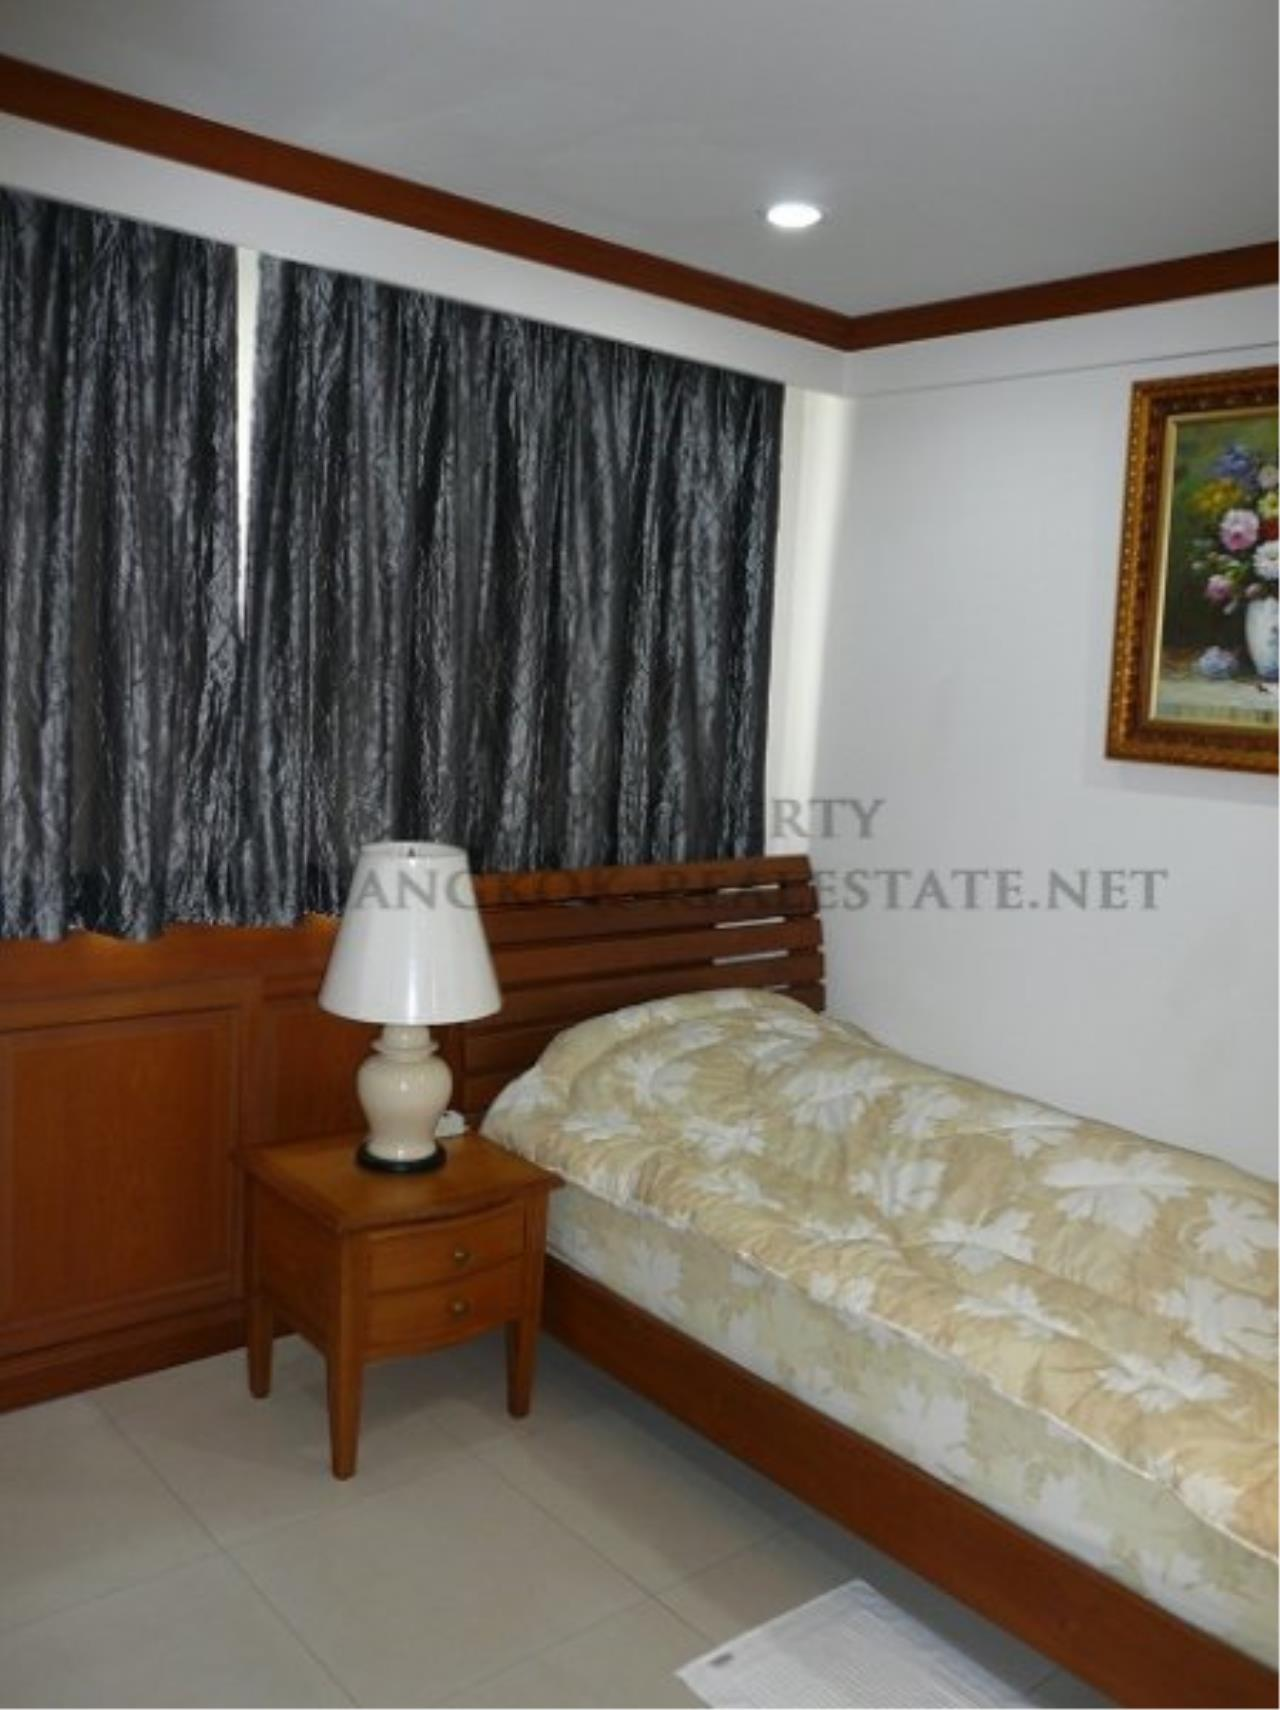 Piri Property Agency's Duplex Condominium in Asoke for Sale - 3 Bedroom 16